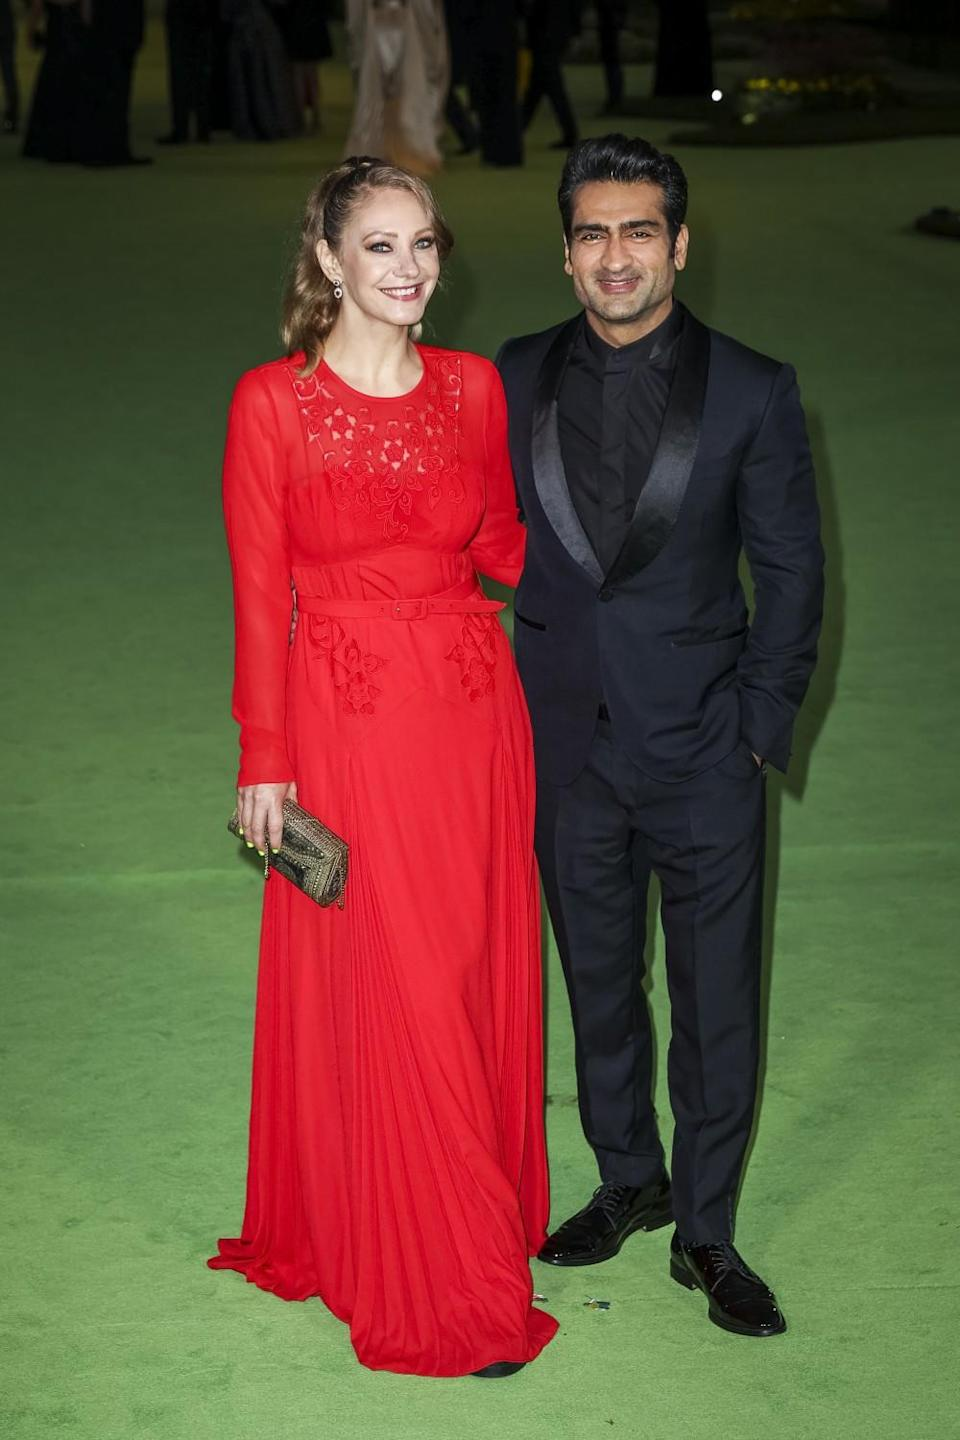 A woman in a red dress and a man in a black suit posing on a green carpet